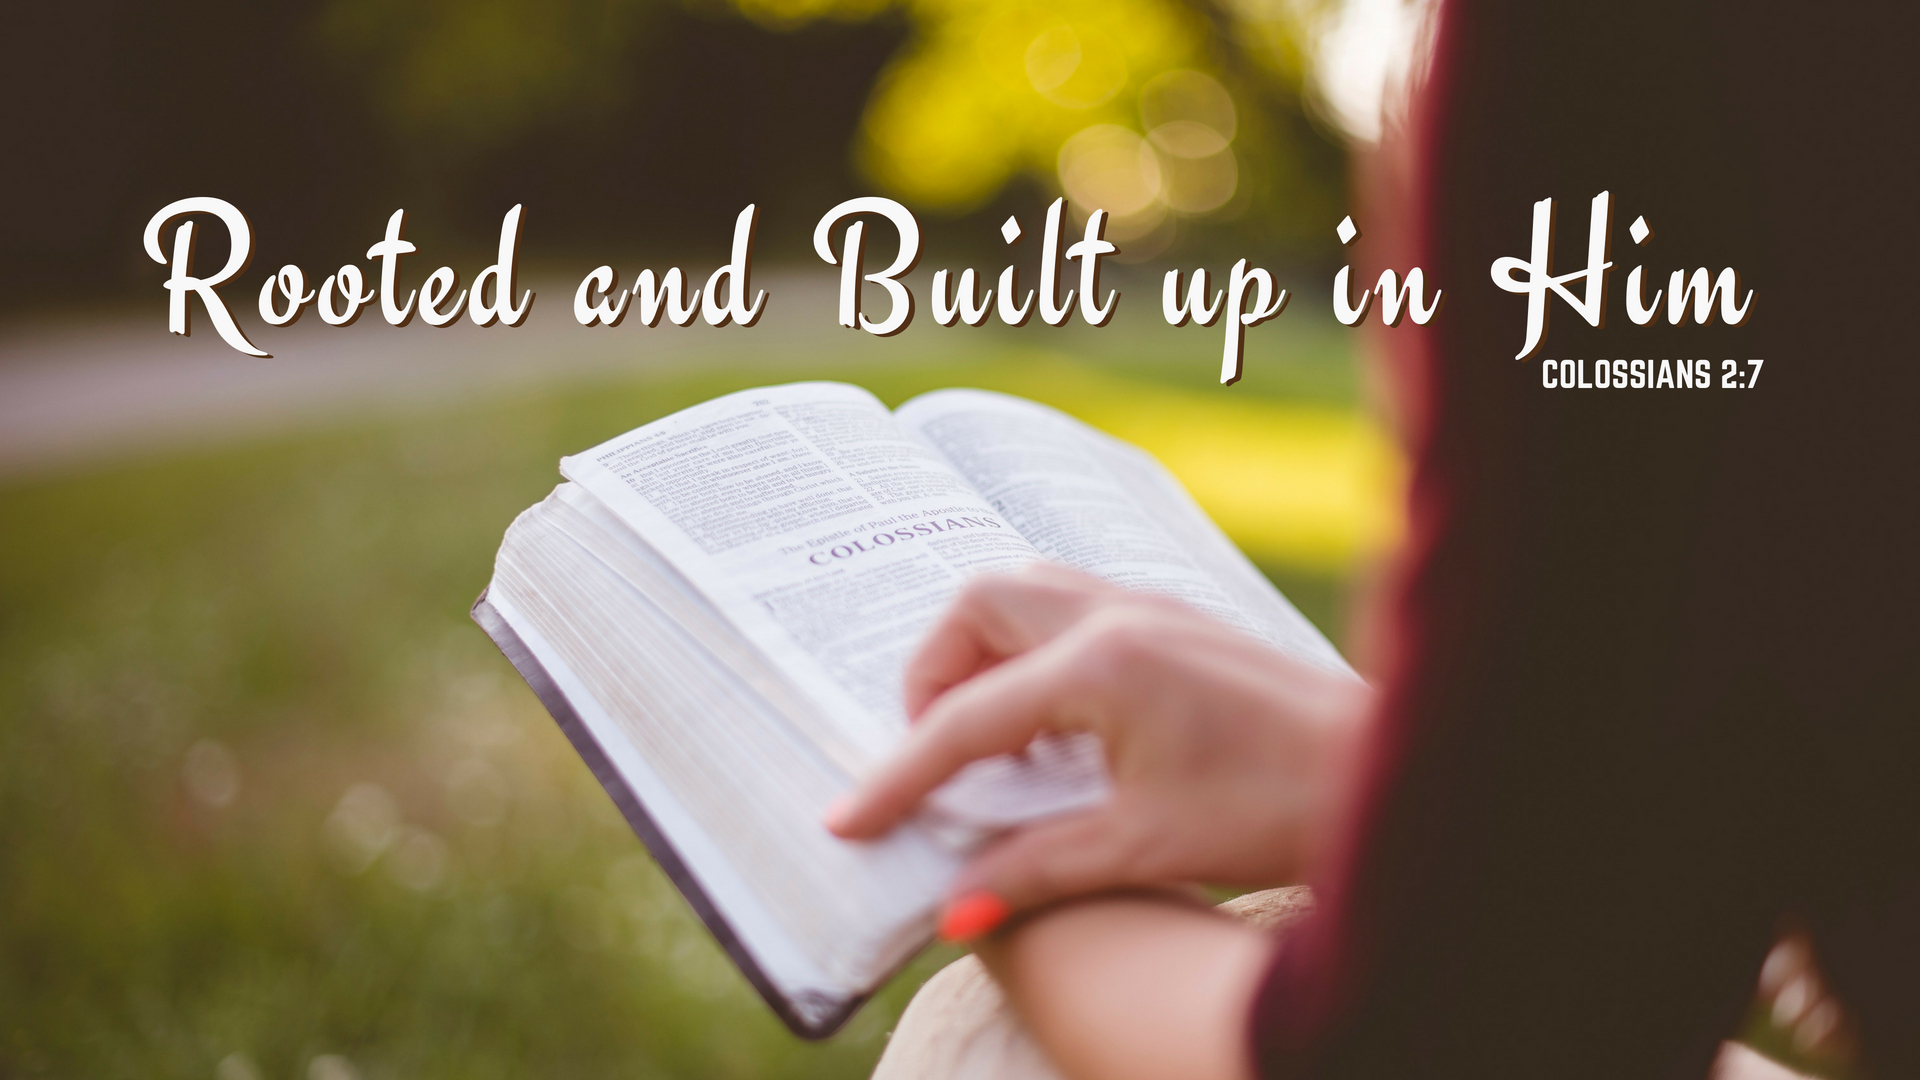 Rooted and Built up in Christ Colossians 2:7   Oak Grove Church of Christ